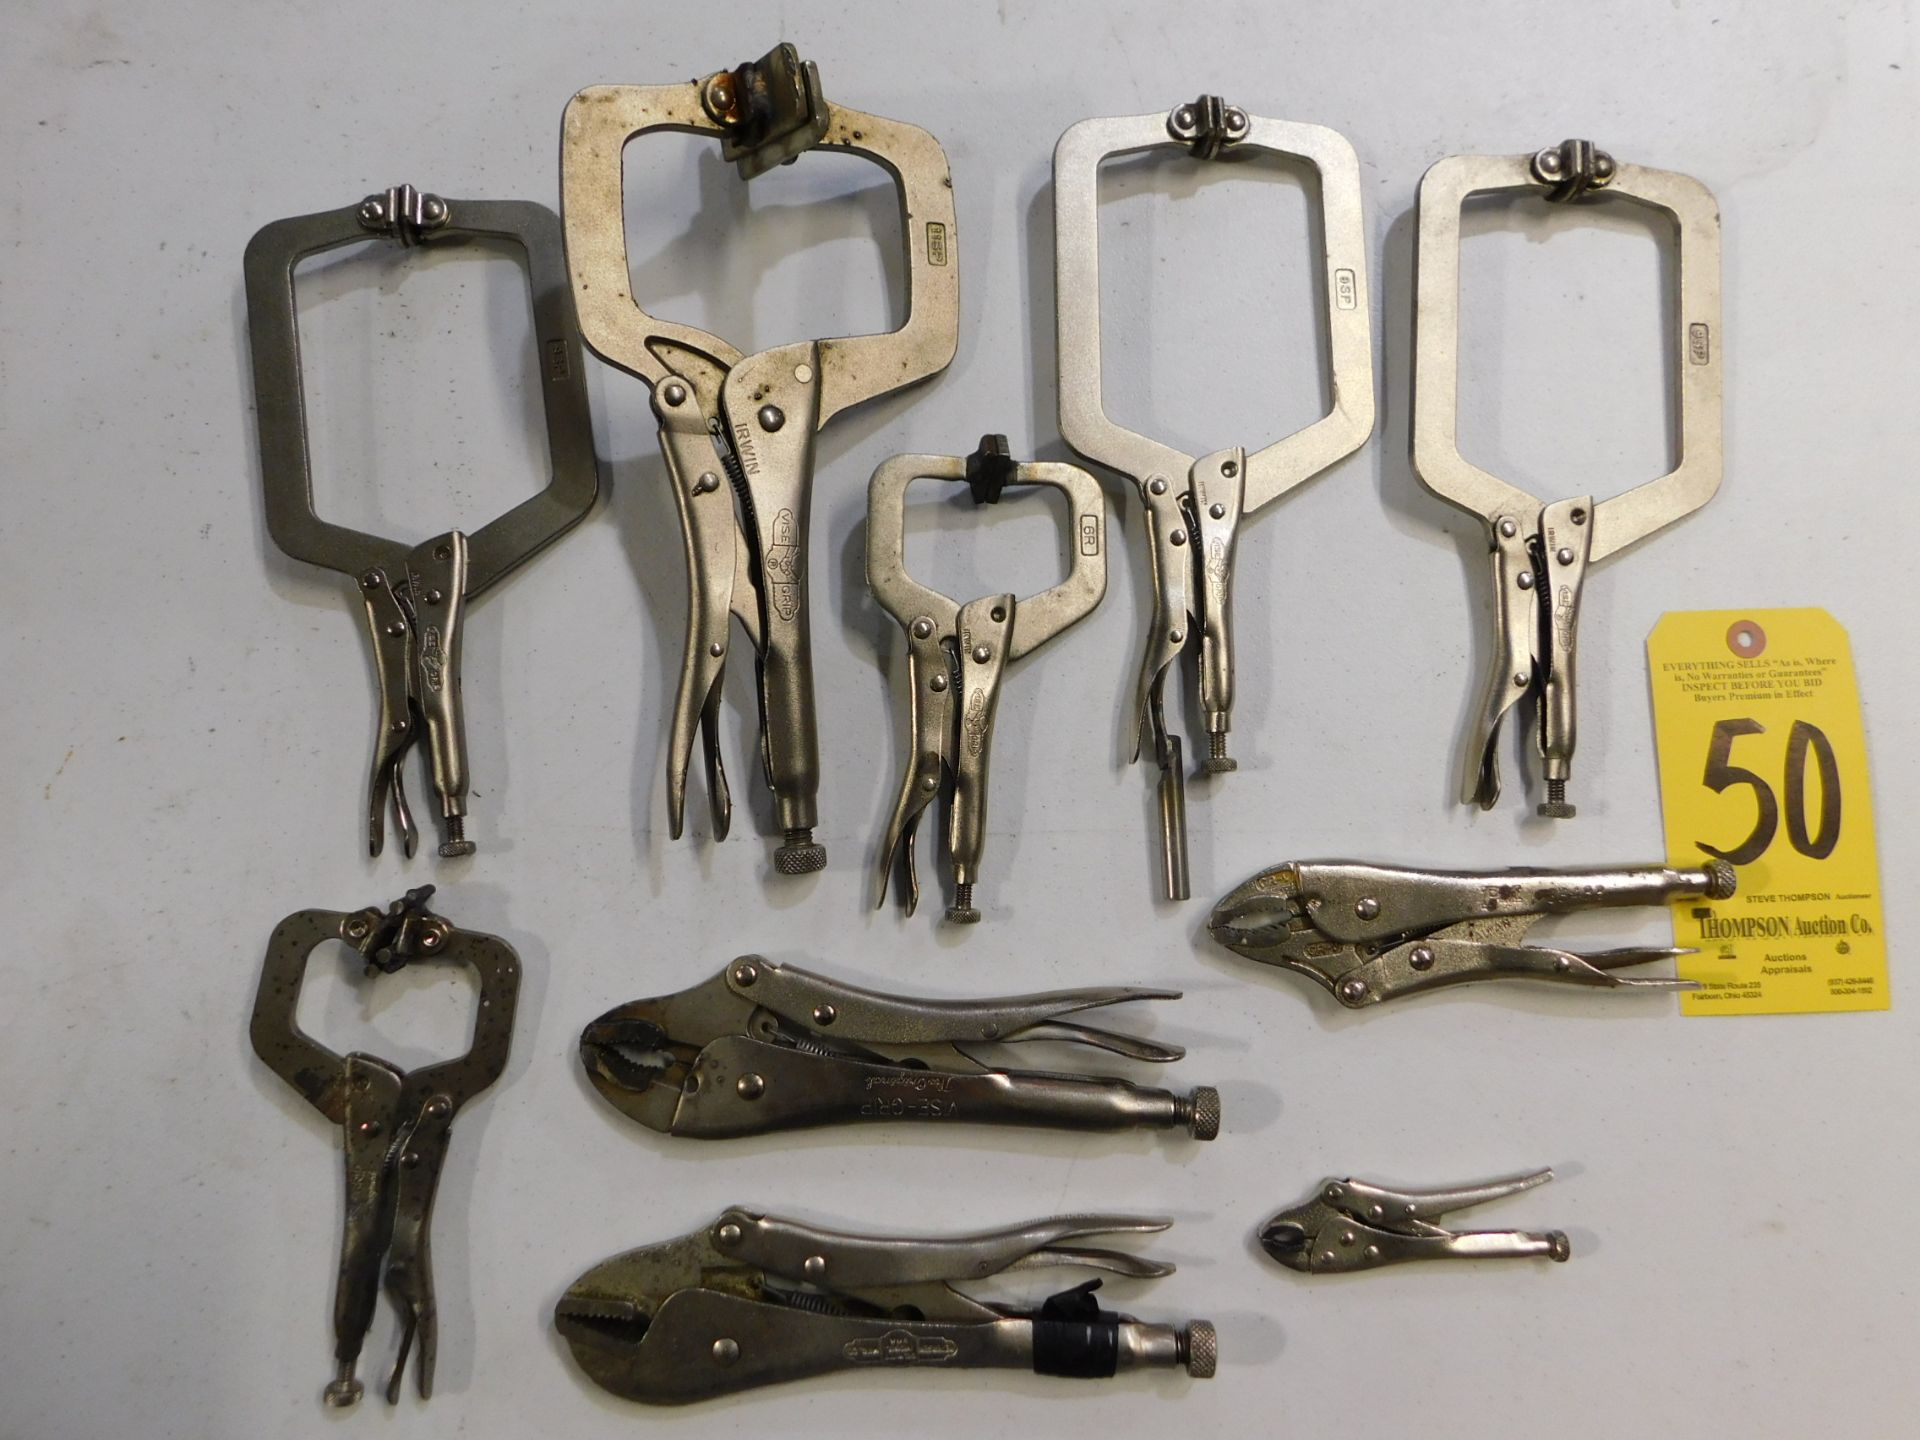 Lot 50 - Vise Grip Clamping Tools, Lot Location 3204 Olympia Dr. A, Lafayette, IN 47909